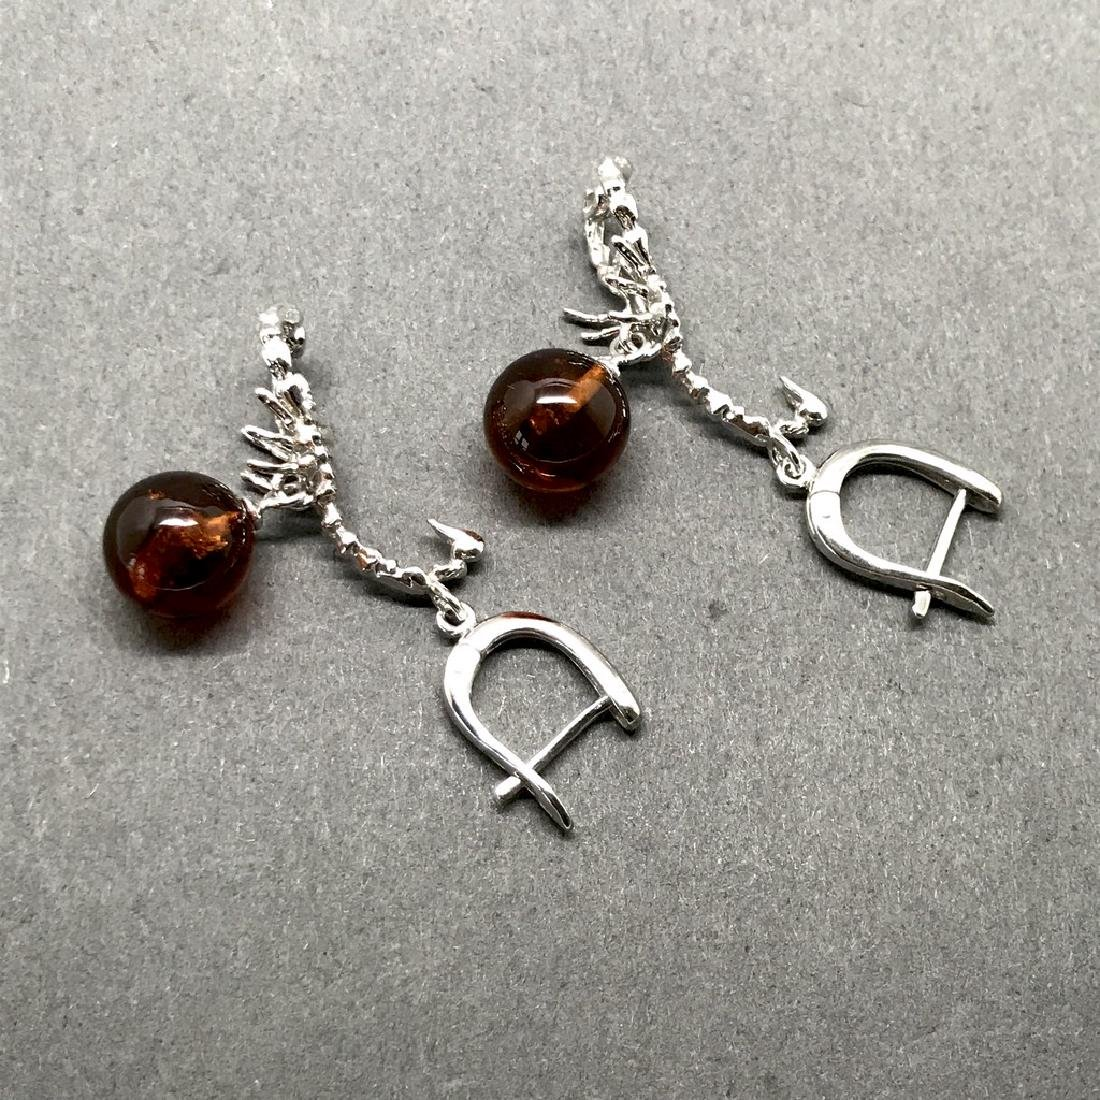 Sterling silver 925 earrings with Baltic amber balls - 4